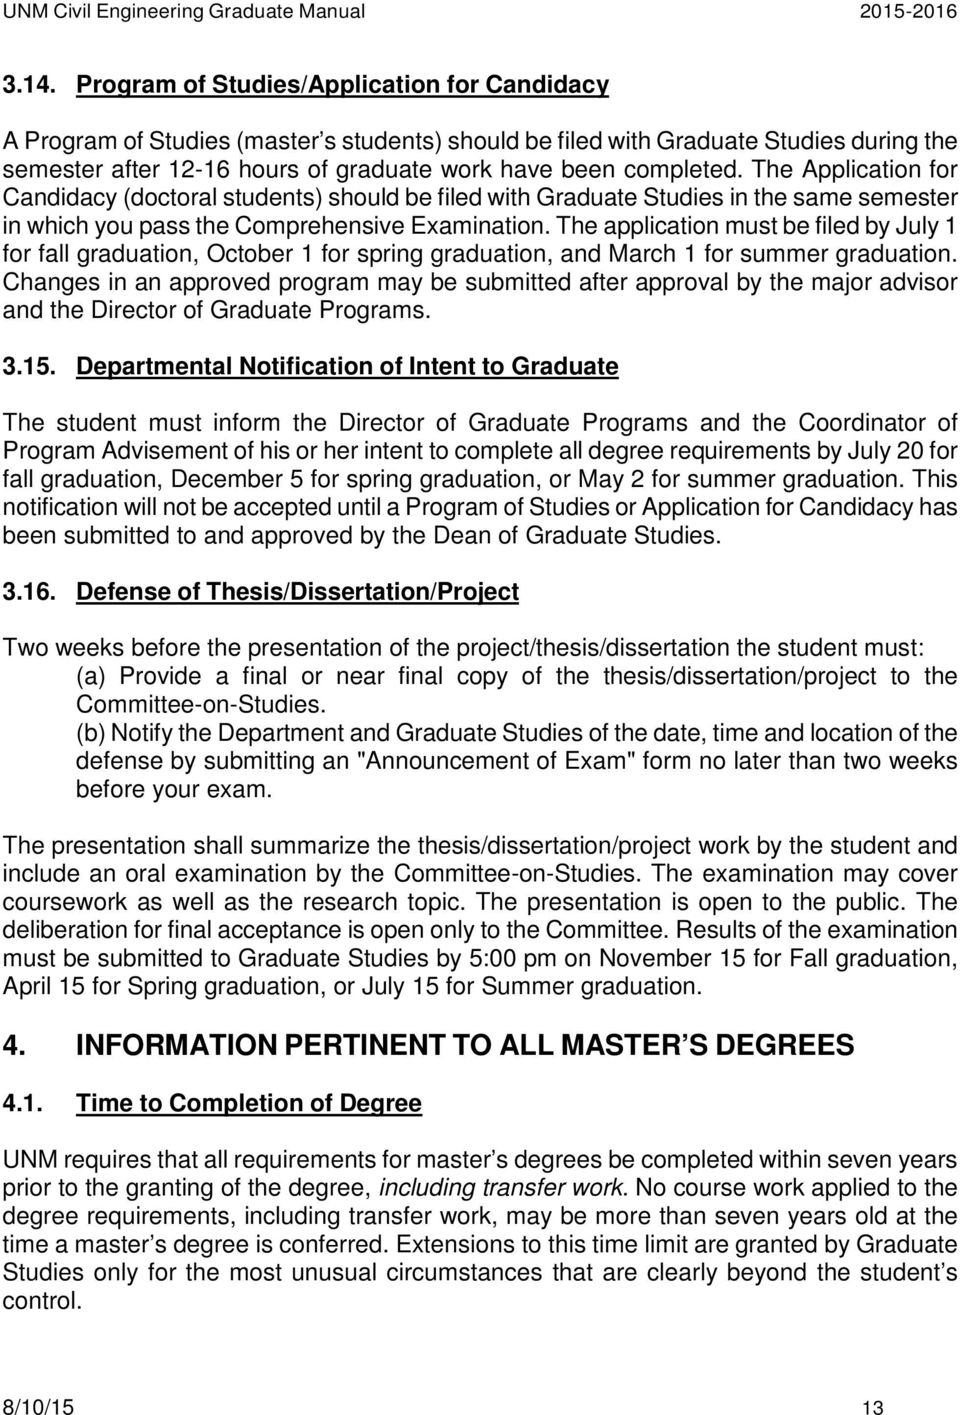 The application must be filed by July 1 for fall graduation, October 1 for spring graduation, and March 1 for summer graduation.